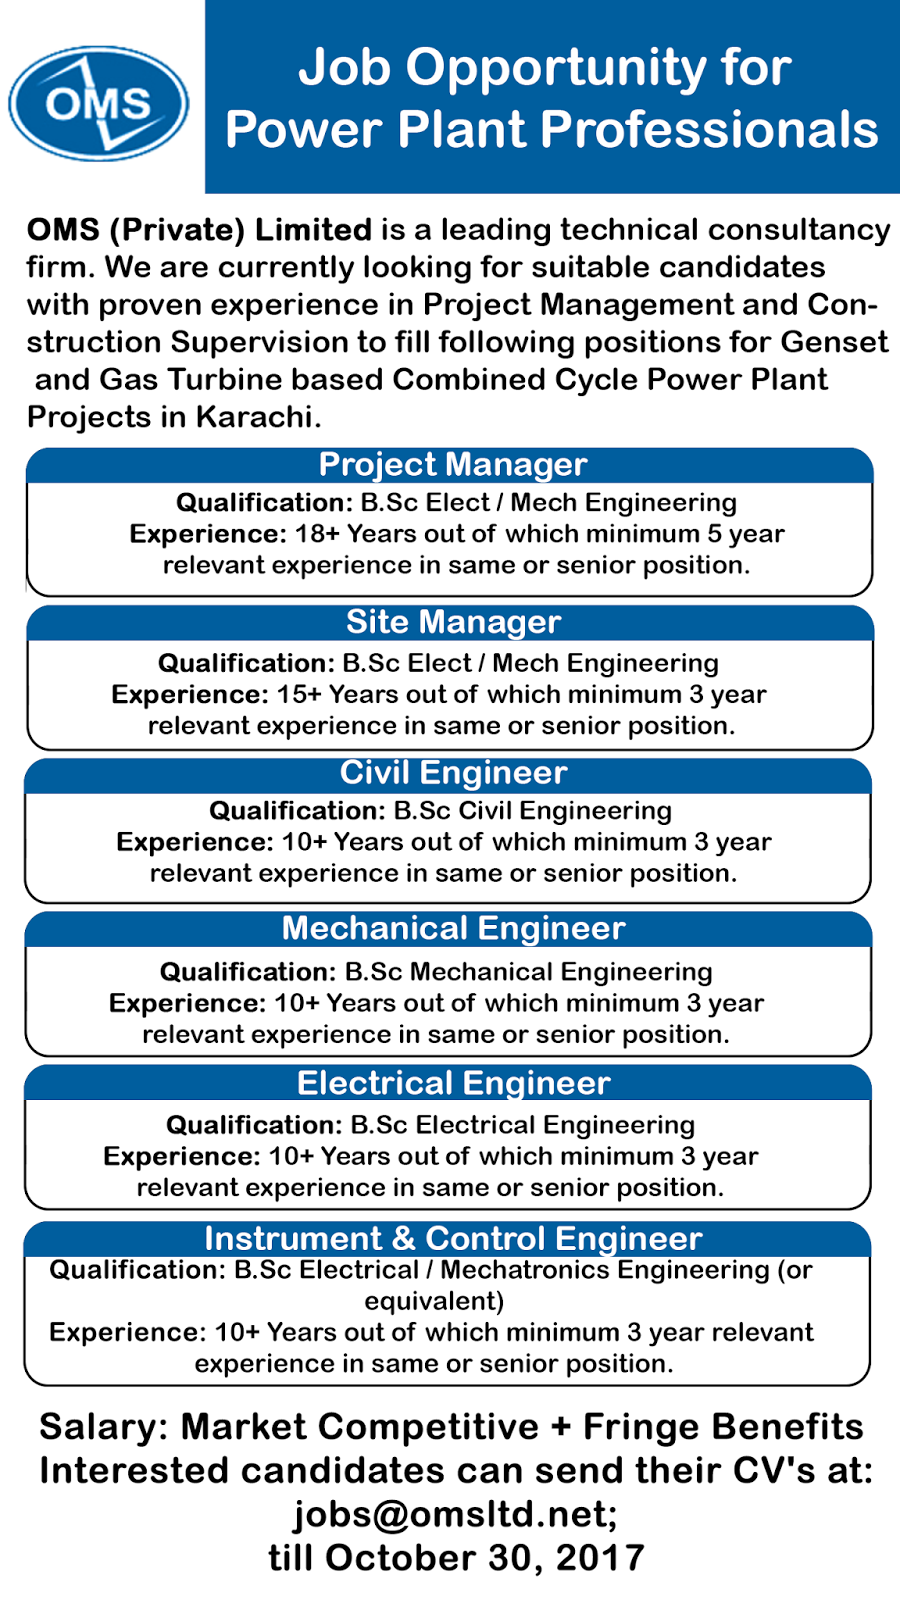 OMS Job Opportunity for Power Plant Professionals Apply